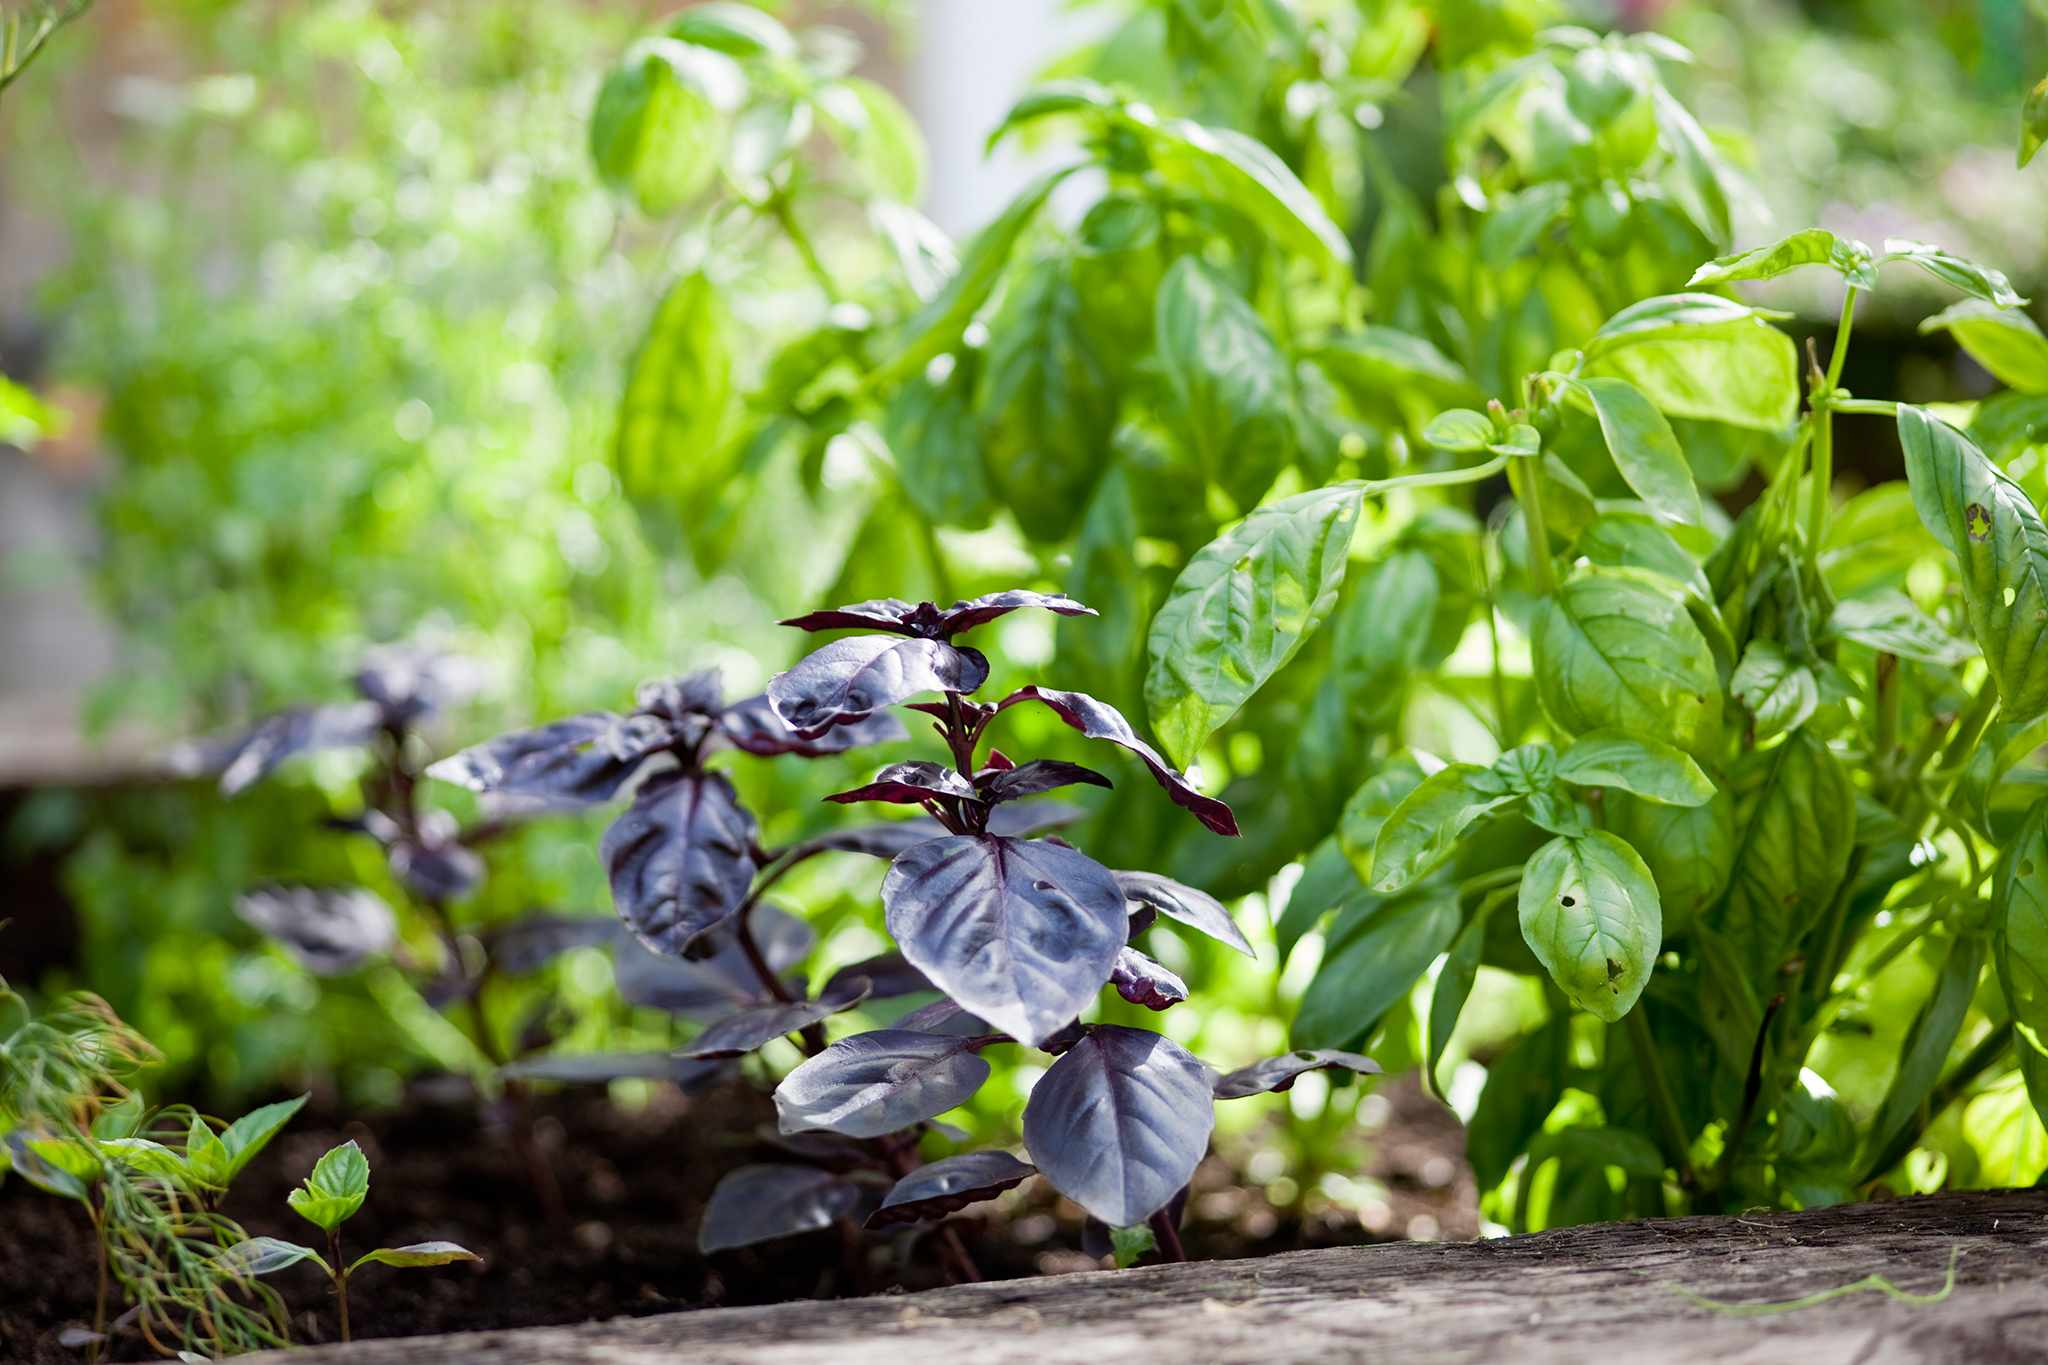 Green and purple basil